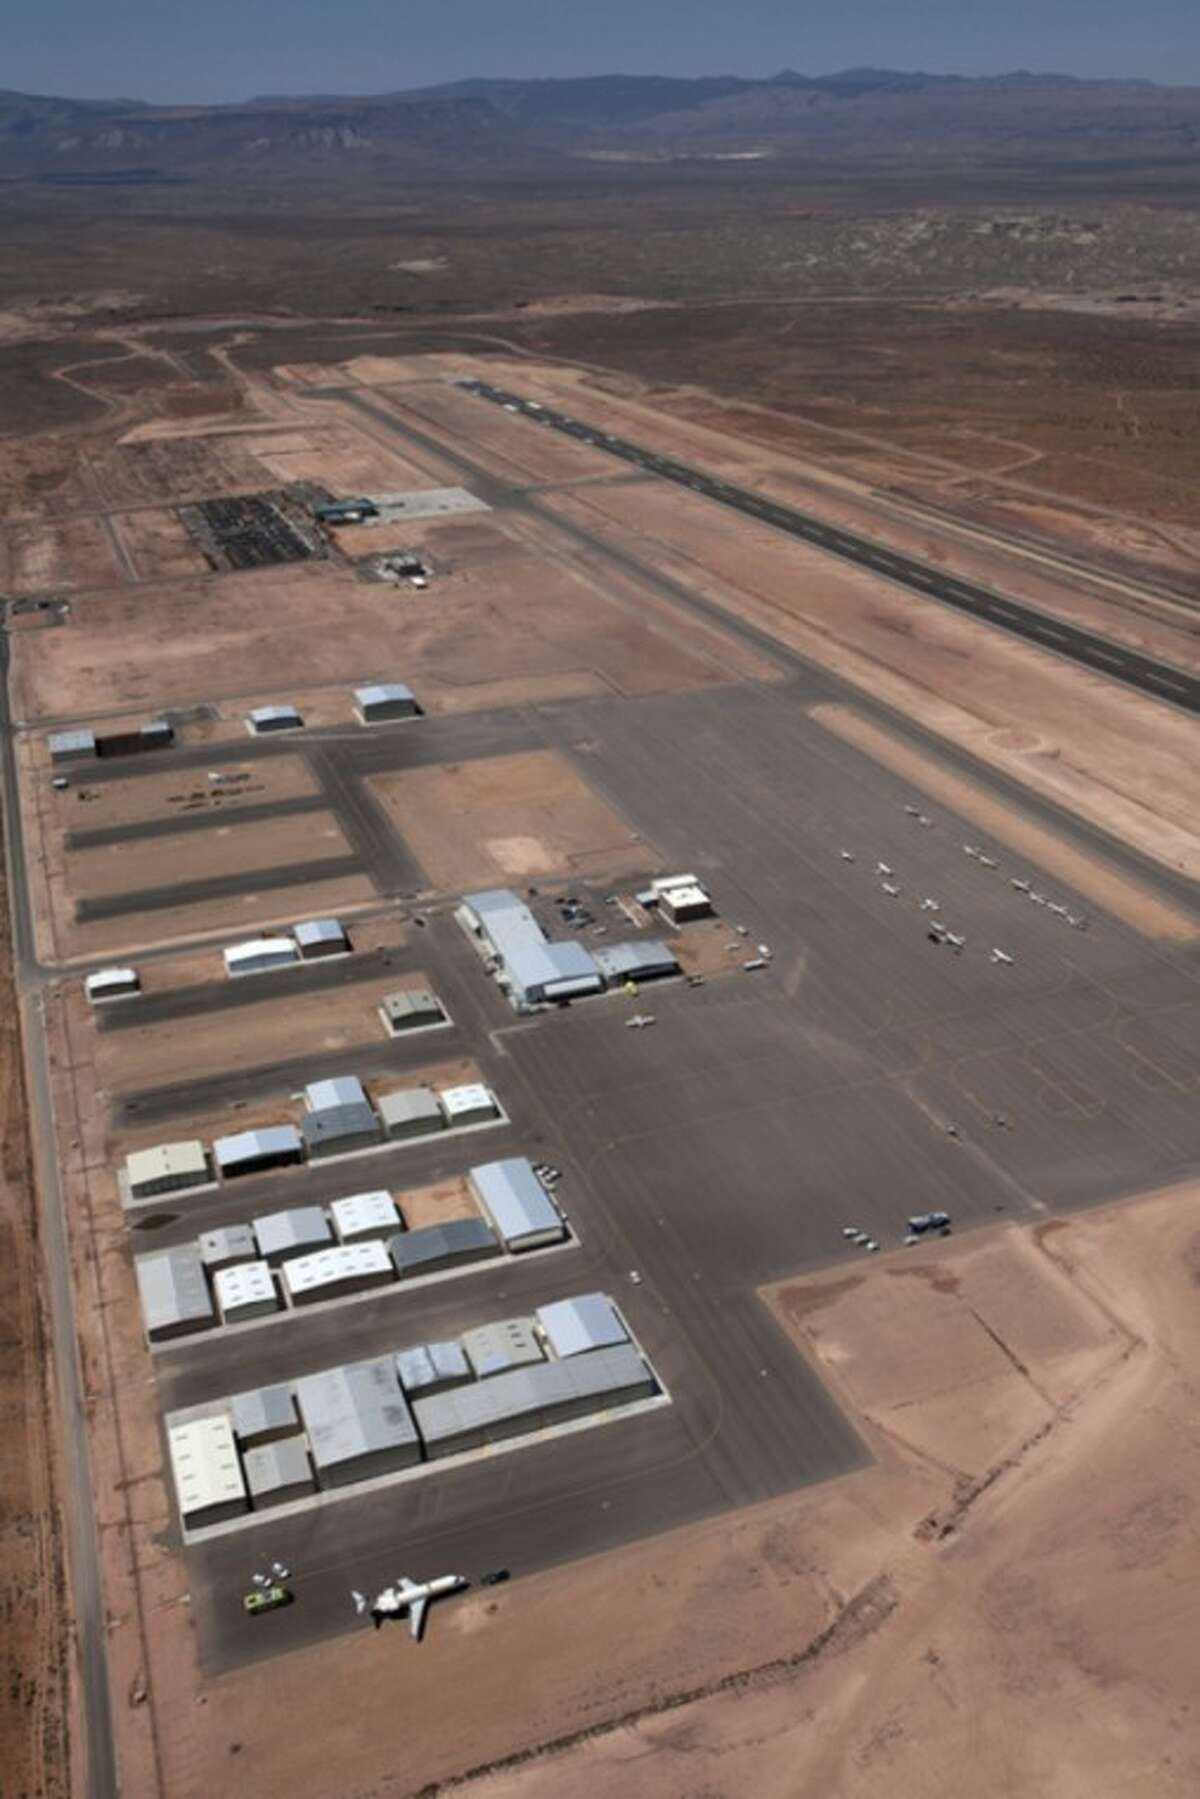 An aerial view shows the St. George Municipal Airport Tuesday, July 17, 2012. A SkyWest Airlines employee wanted in a murder case attempted to steal a passenger plane, then shot himself in the head after crashing the aircraft in a nearby parking lot, officials said Tuesday. Brian Hedglin, 40, scaled a razor wire fence at the St. George Municipal Airport early Tuesday, then boarded the 50-passenger SkyWest jet while the airport was closed, St. George city spokesman Marc Mortenson said. (AP Photo/The Spectrum, Jud Burkett) NO SALES